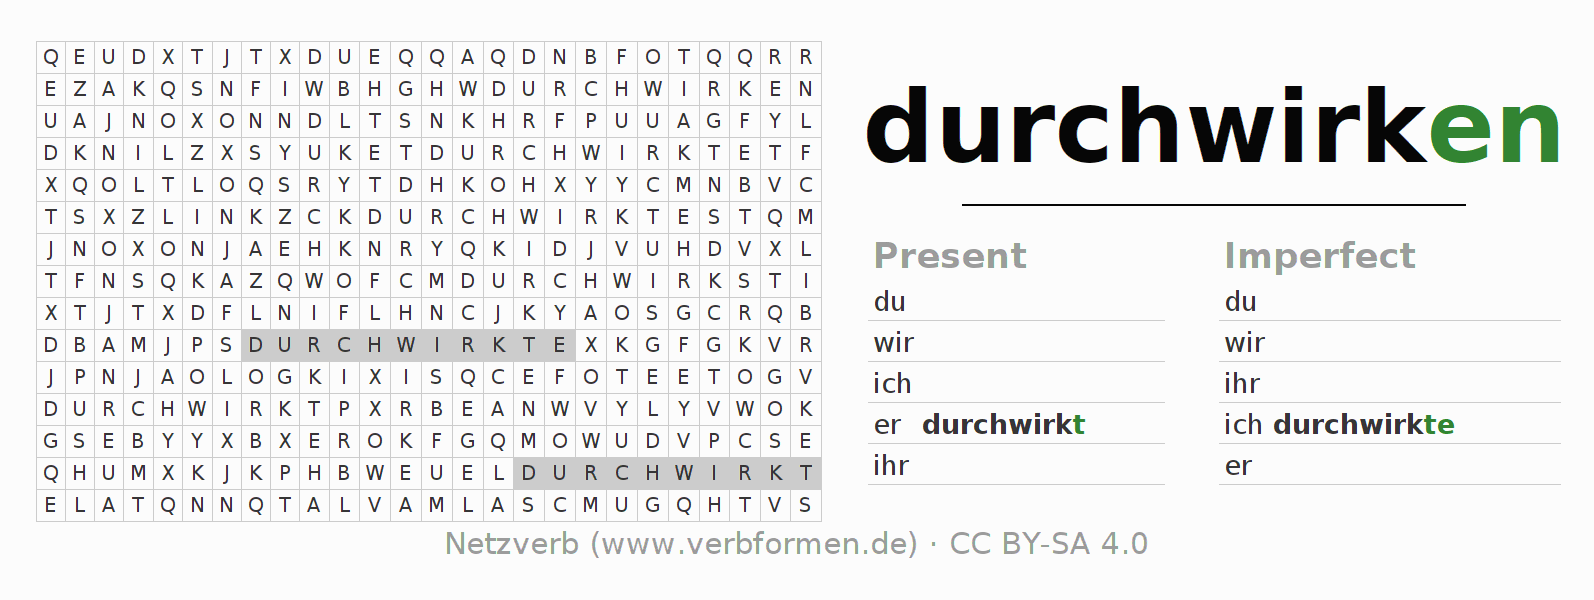 Word search puzzle for the conjugation of the verb durchwirken